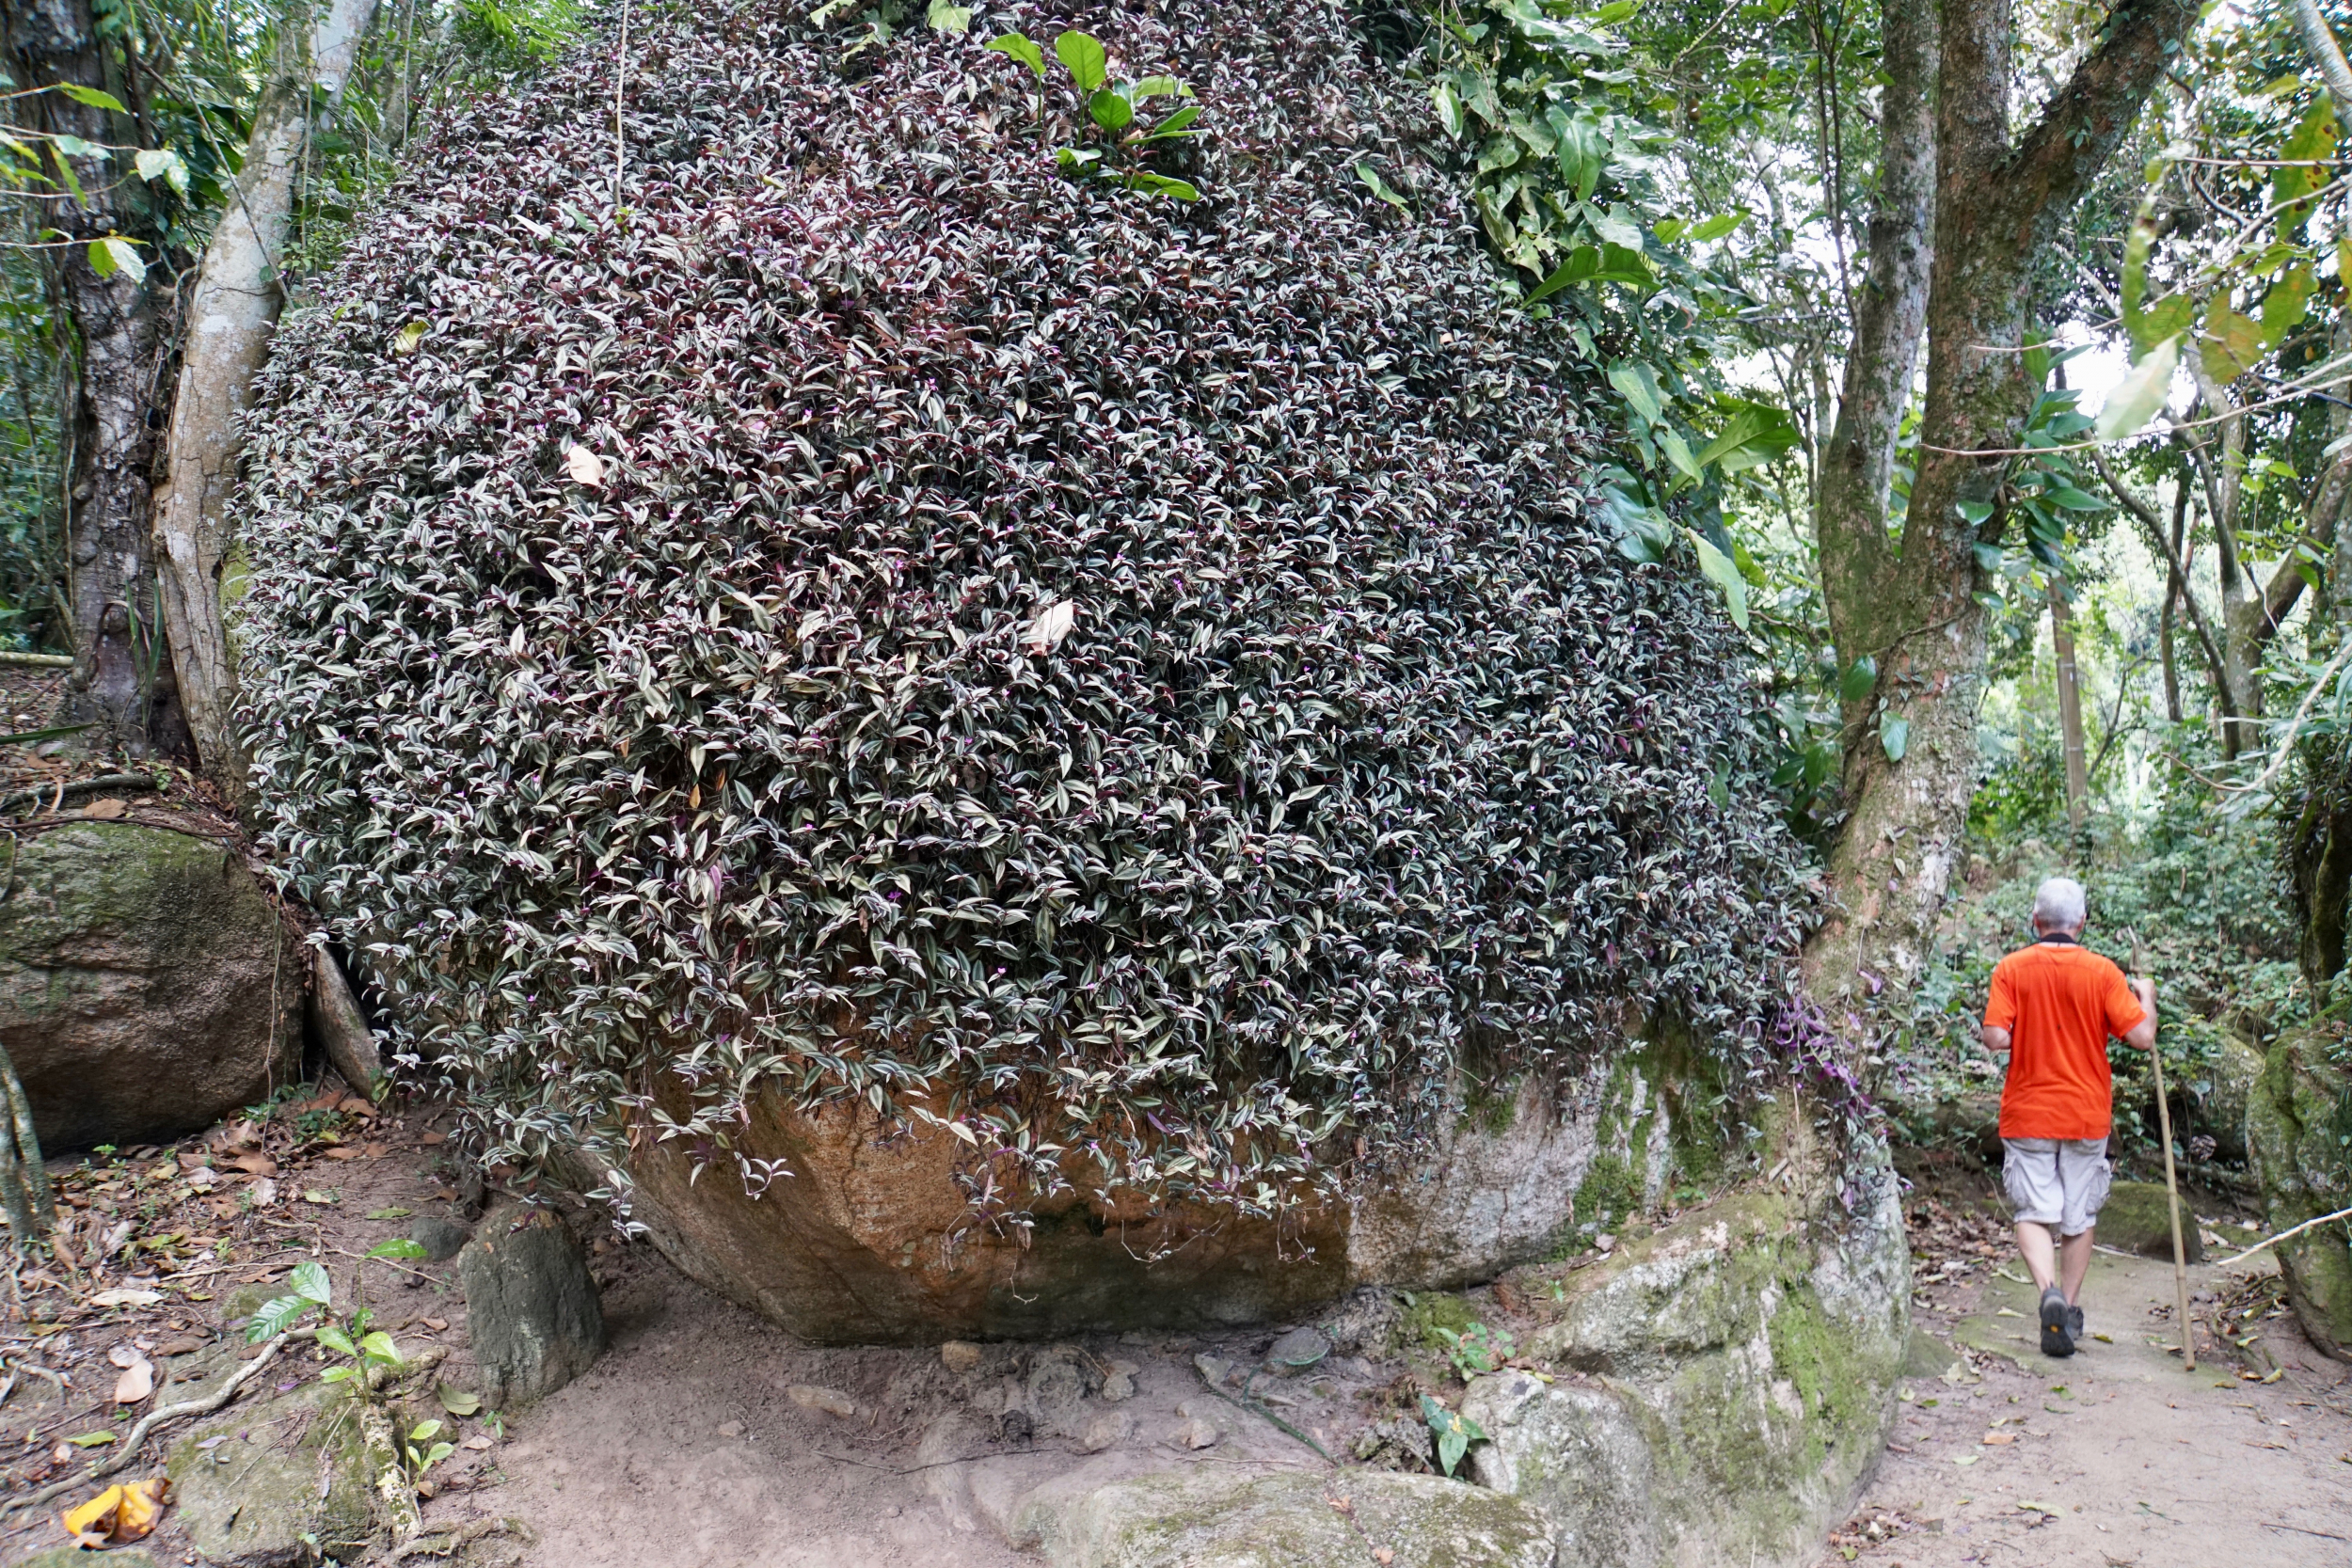 24. Boulder covered with plants